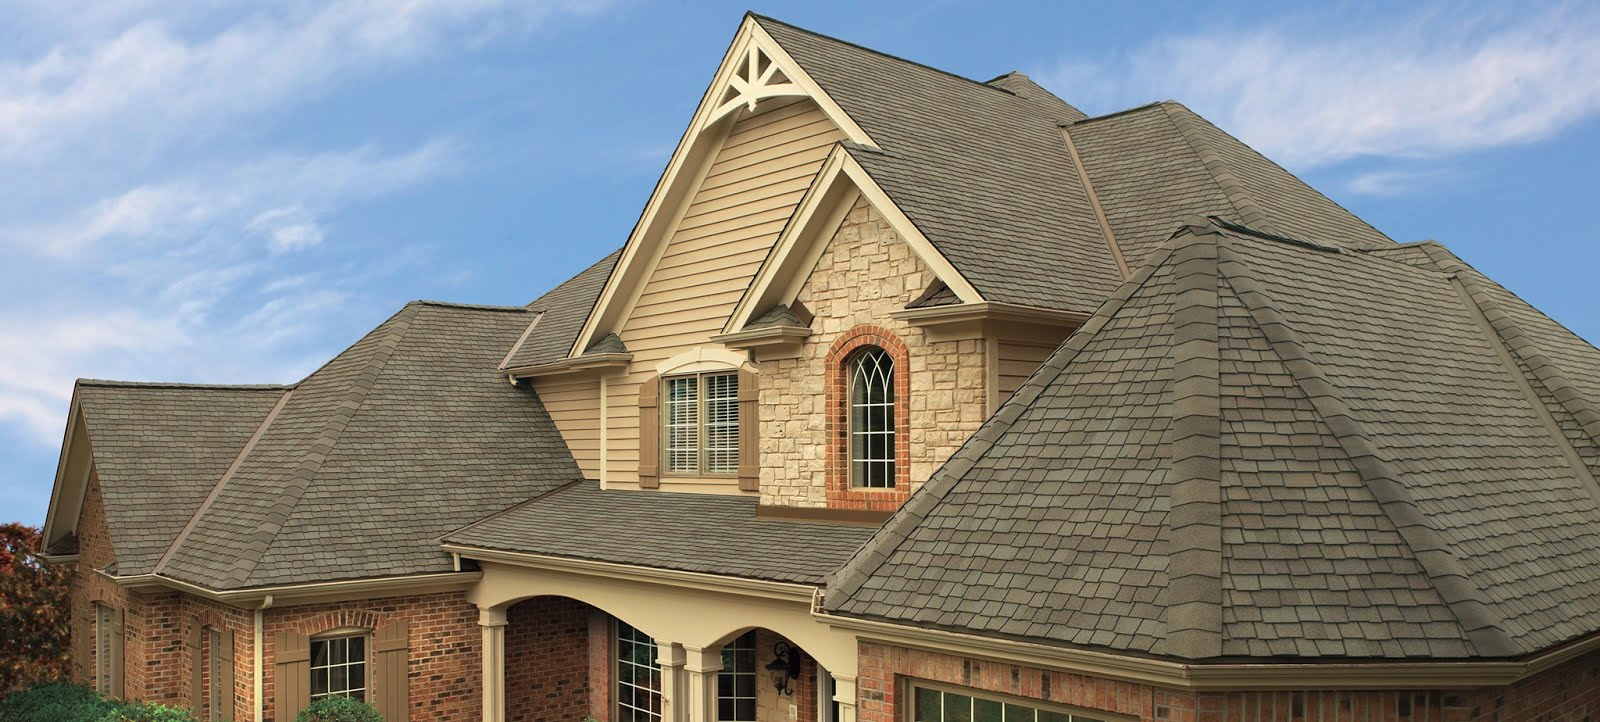 All the Types of GAF Roofing Shingles in One Place